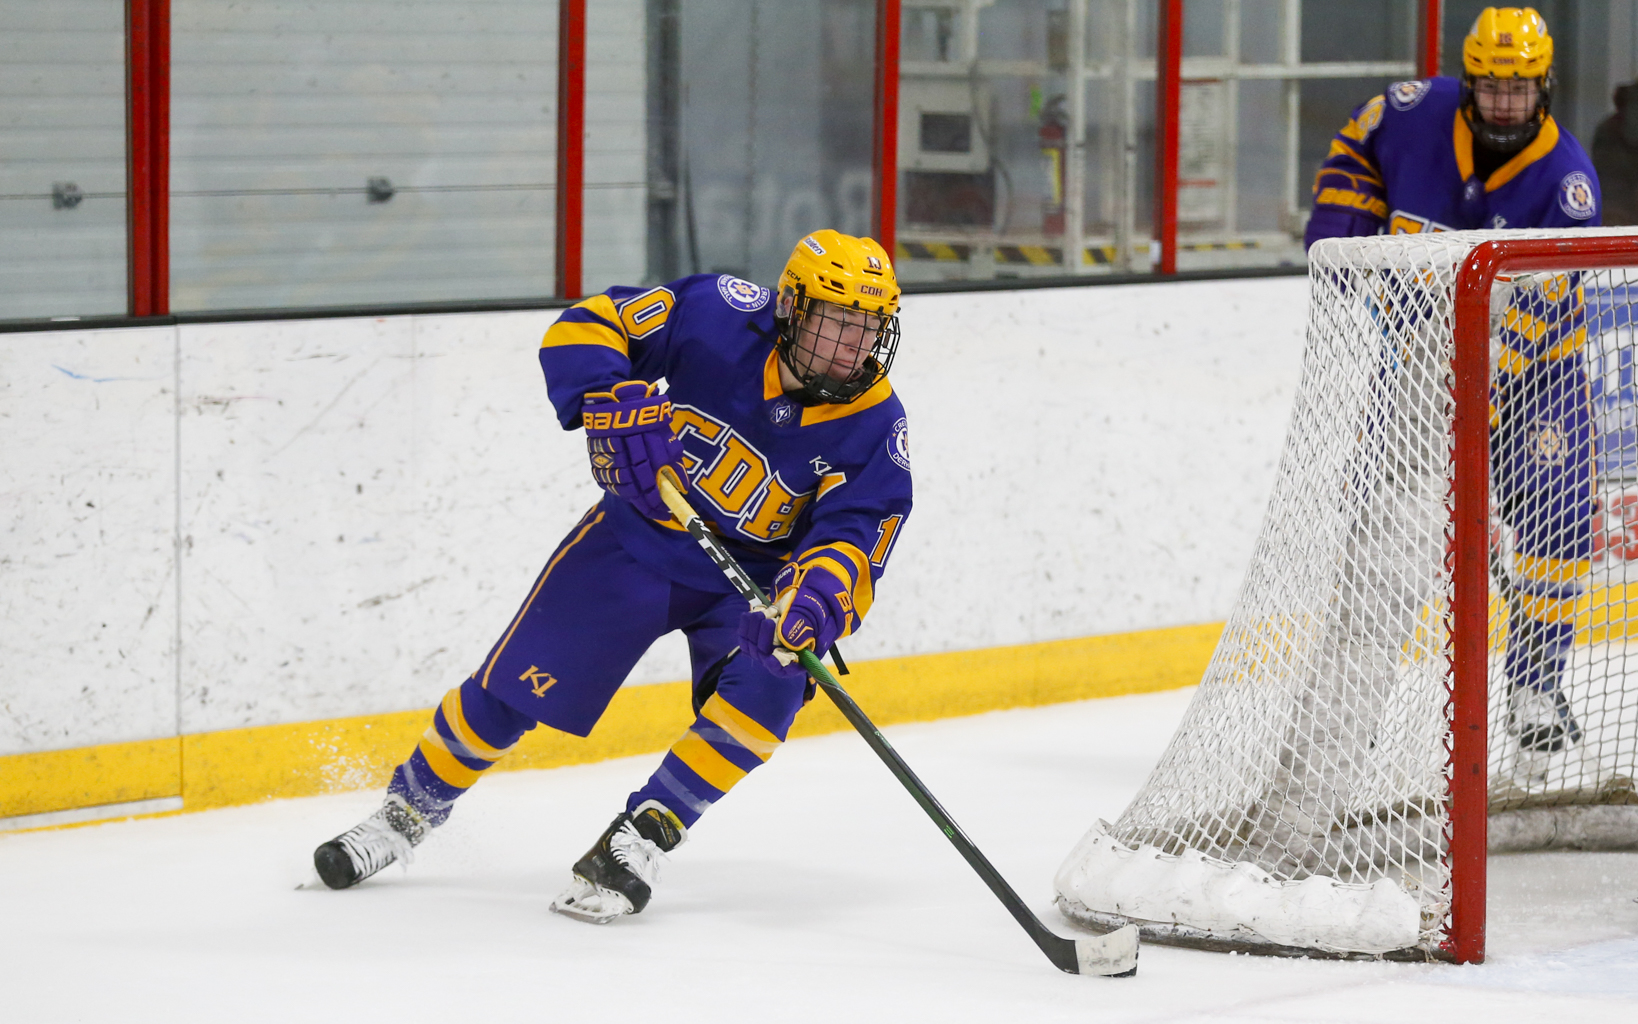 Cretin-Derham Hall's Jack Nei (10) goes for a wraparound attempt against Stillwater Tuesday night. Nei had a goal for the Raiders in their 2-0 victory over the Ponies at the St. Croix Valley Rec Center. Photo by Jeff Lawler, SportsEngine